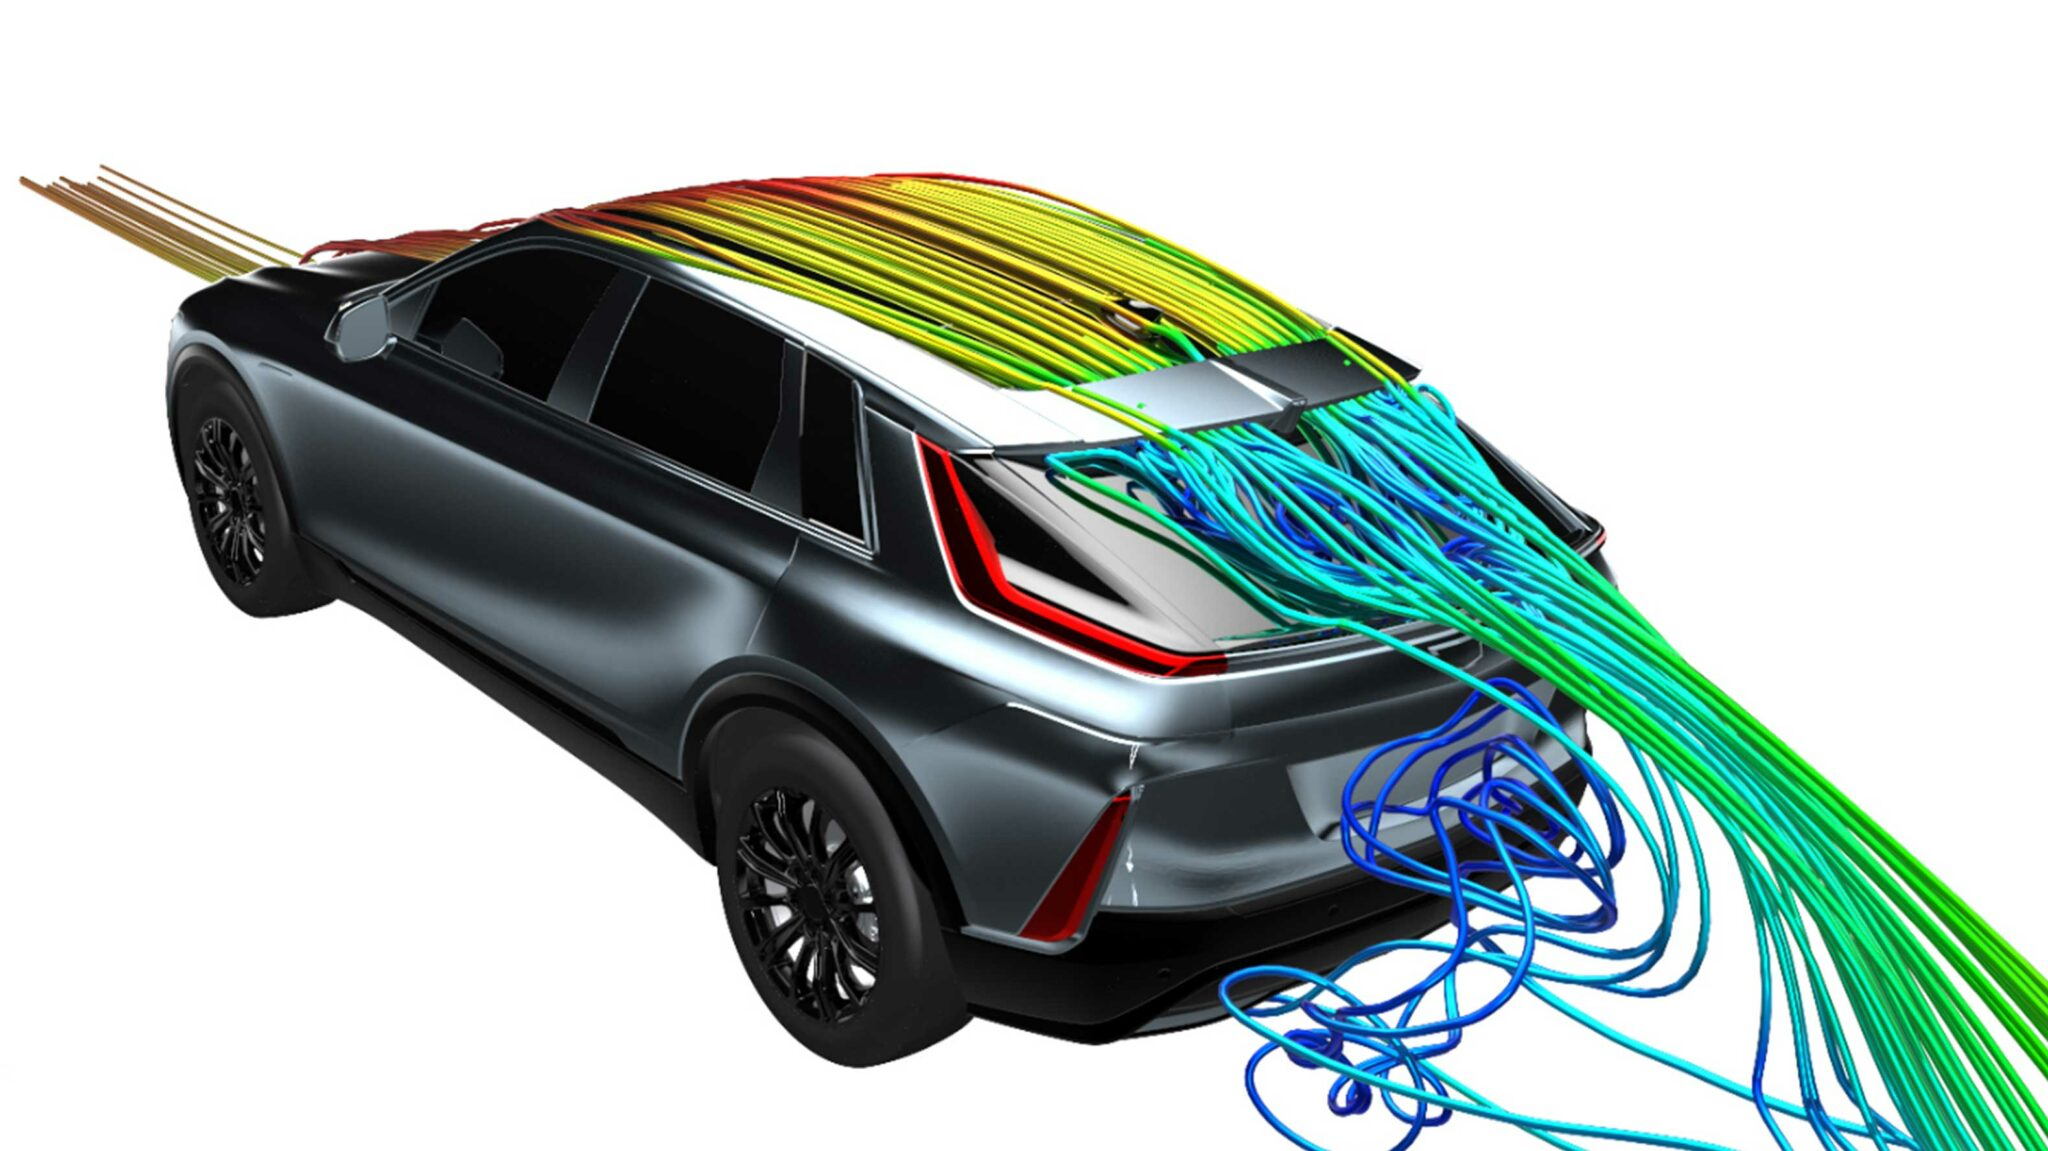 GM is able to accelerate car production using virtual testing